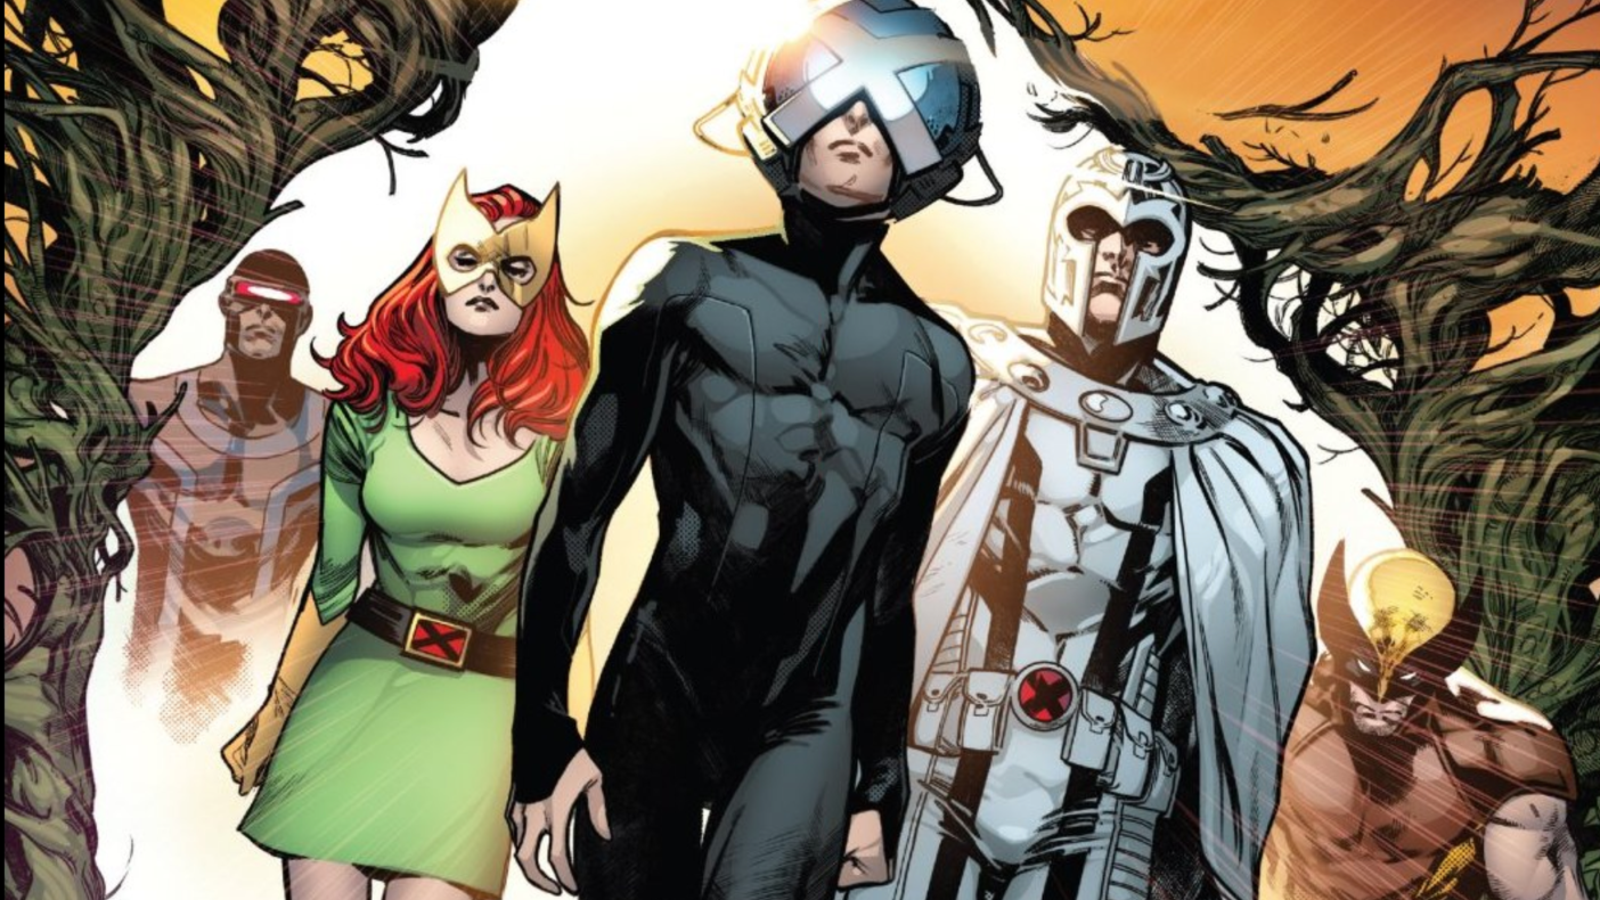 If You Like Comics, You Should Read Marvel's House of X and Powers of X